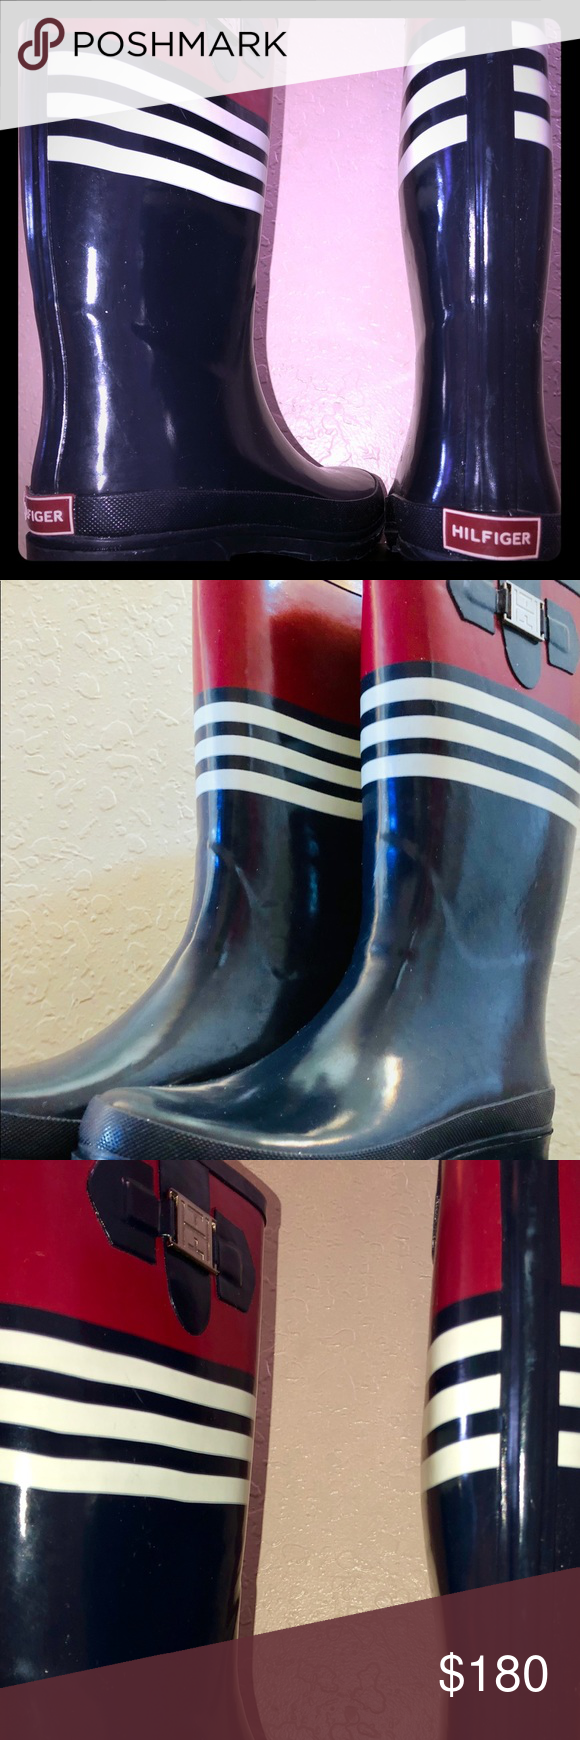 43048f51464f8 Rain boots 12 in (Calf level) TOMMY HILFIGER RAINBOOTS WORN ONCE LIKE NEW  Tommy Hilfiger Shoes Winter   Rain Boots